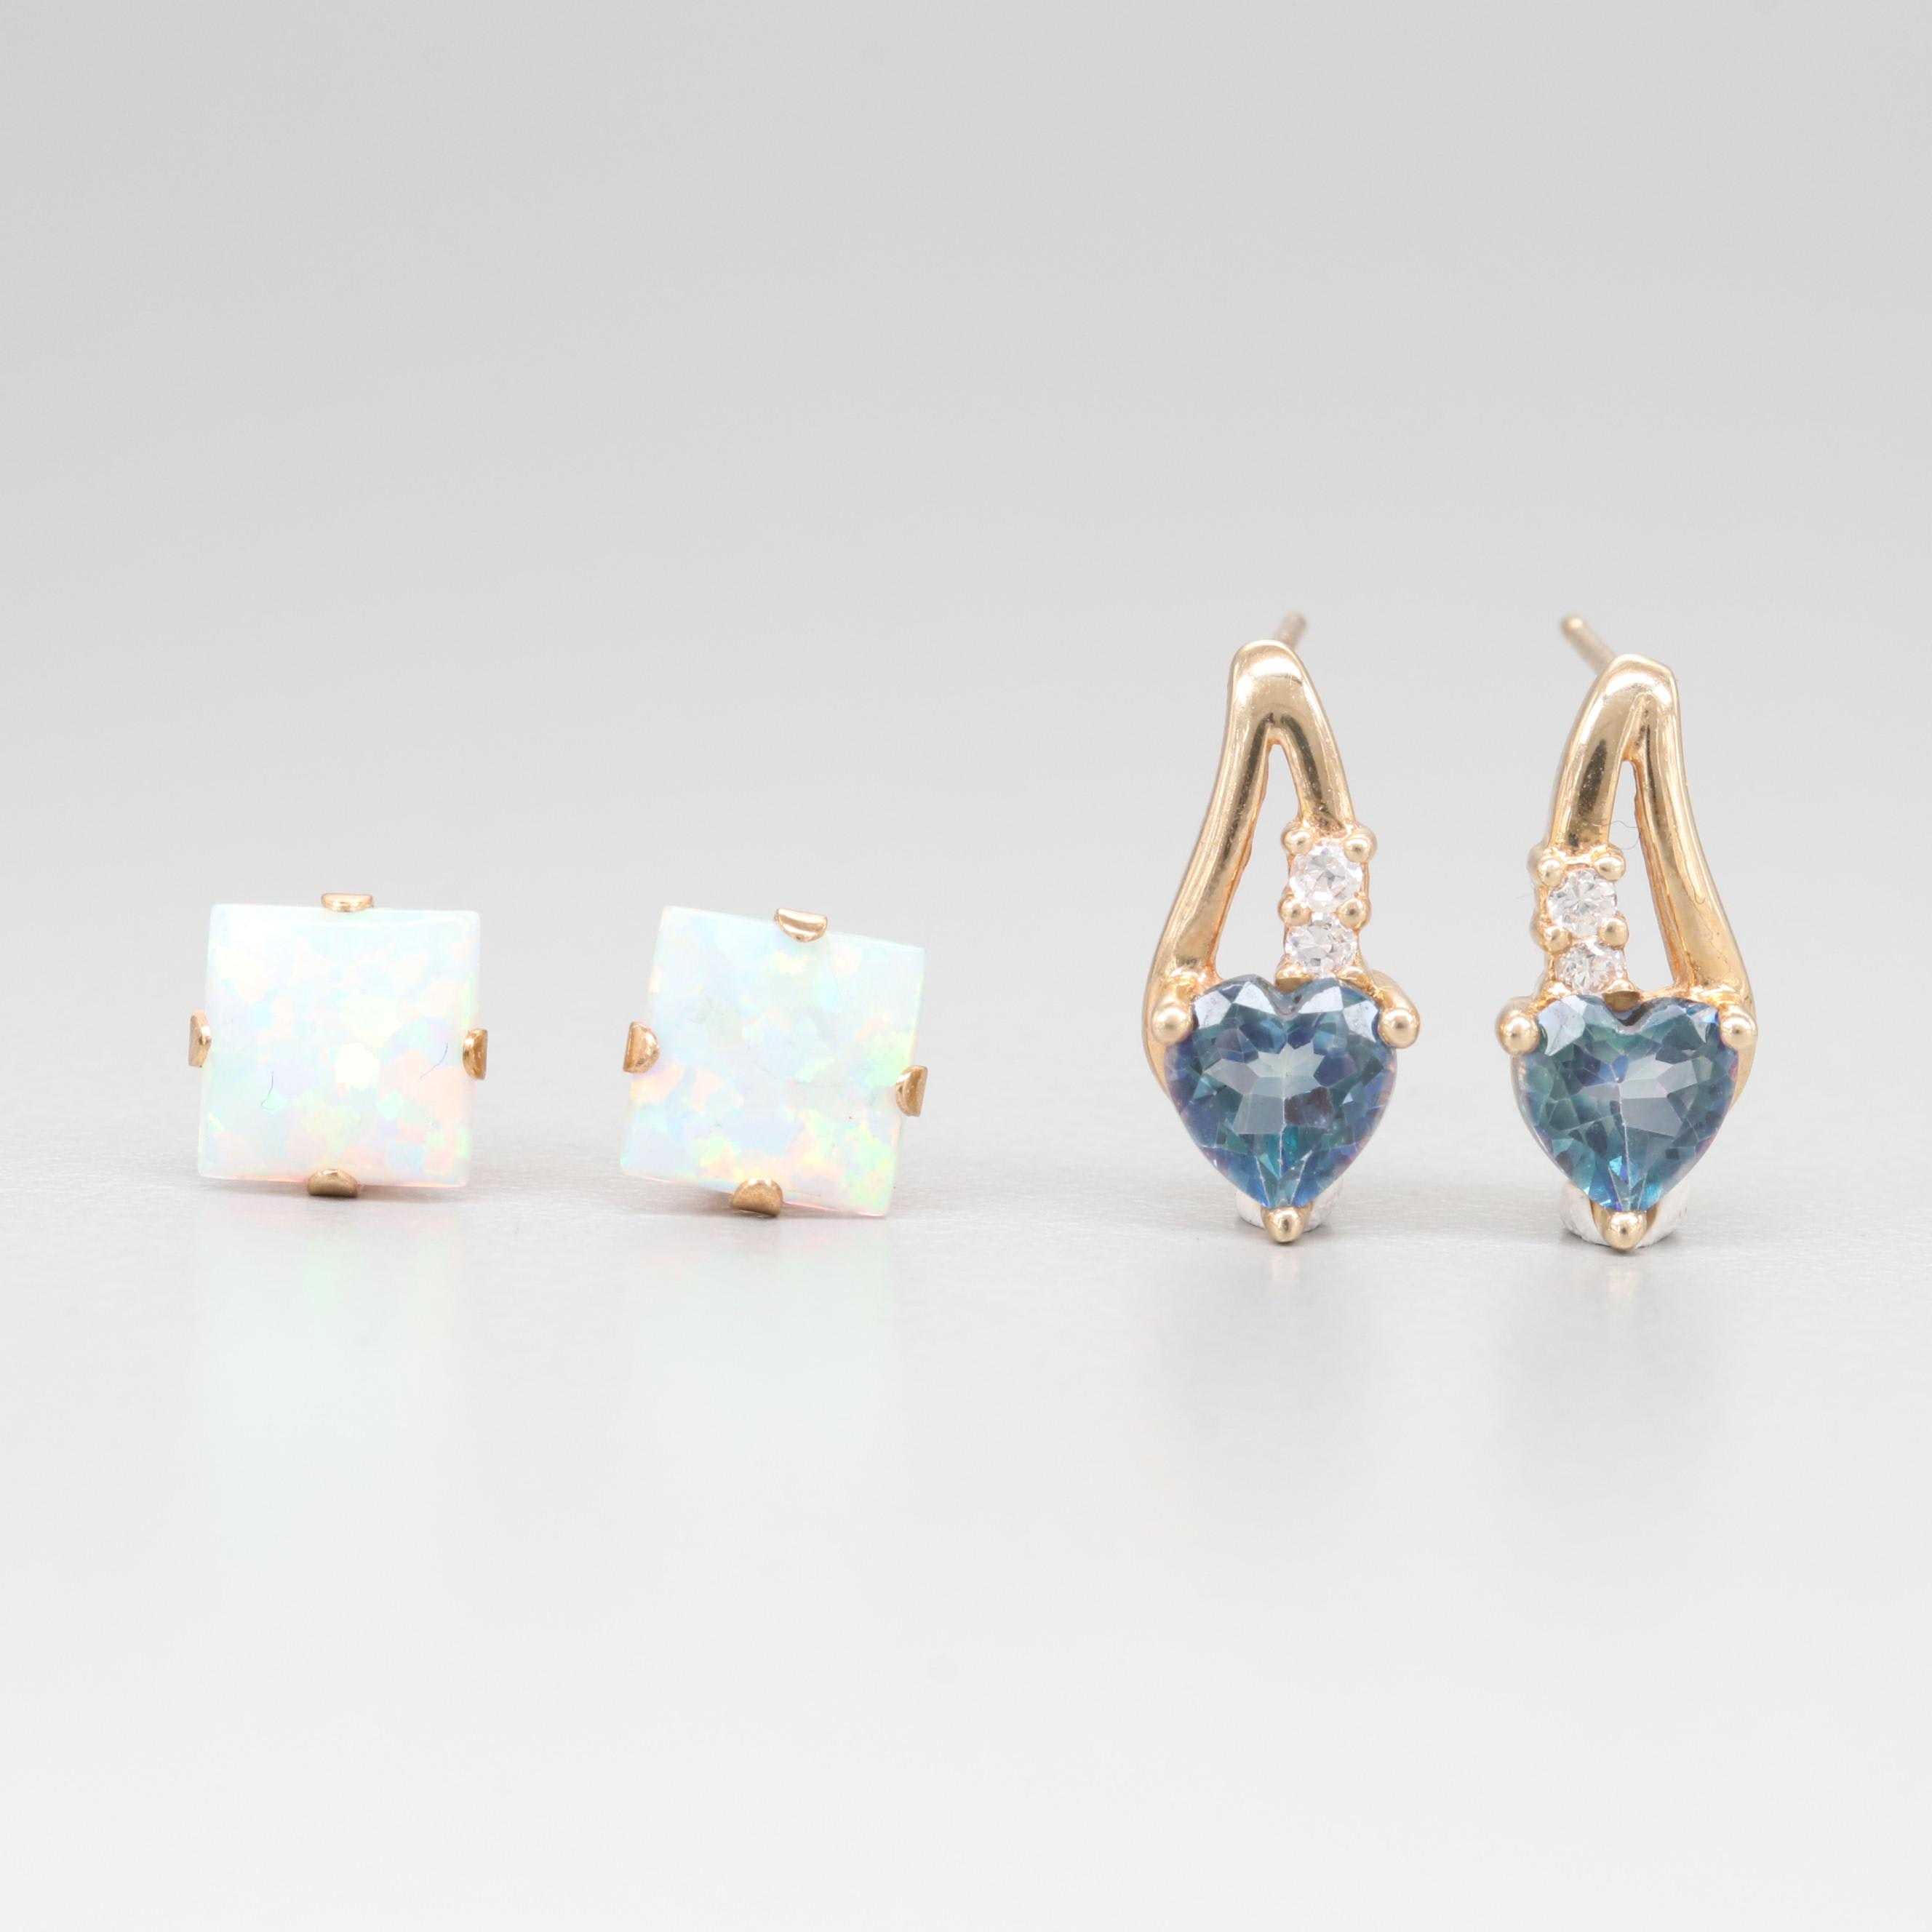 10K Yellow Gold Synthetic Opal, Topaz, and Cubic Zirconia Earrings